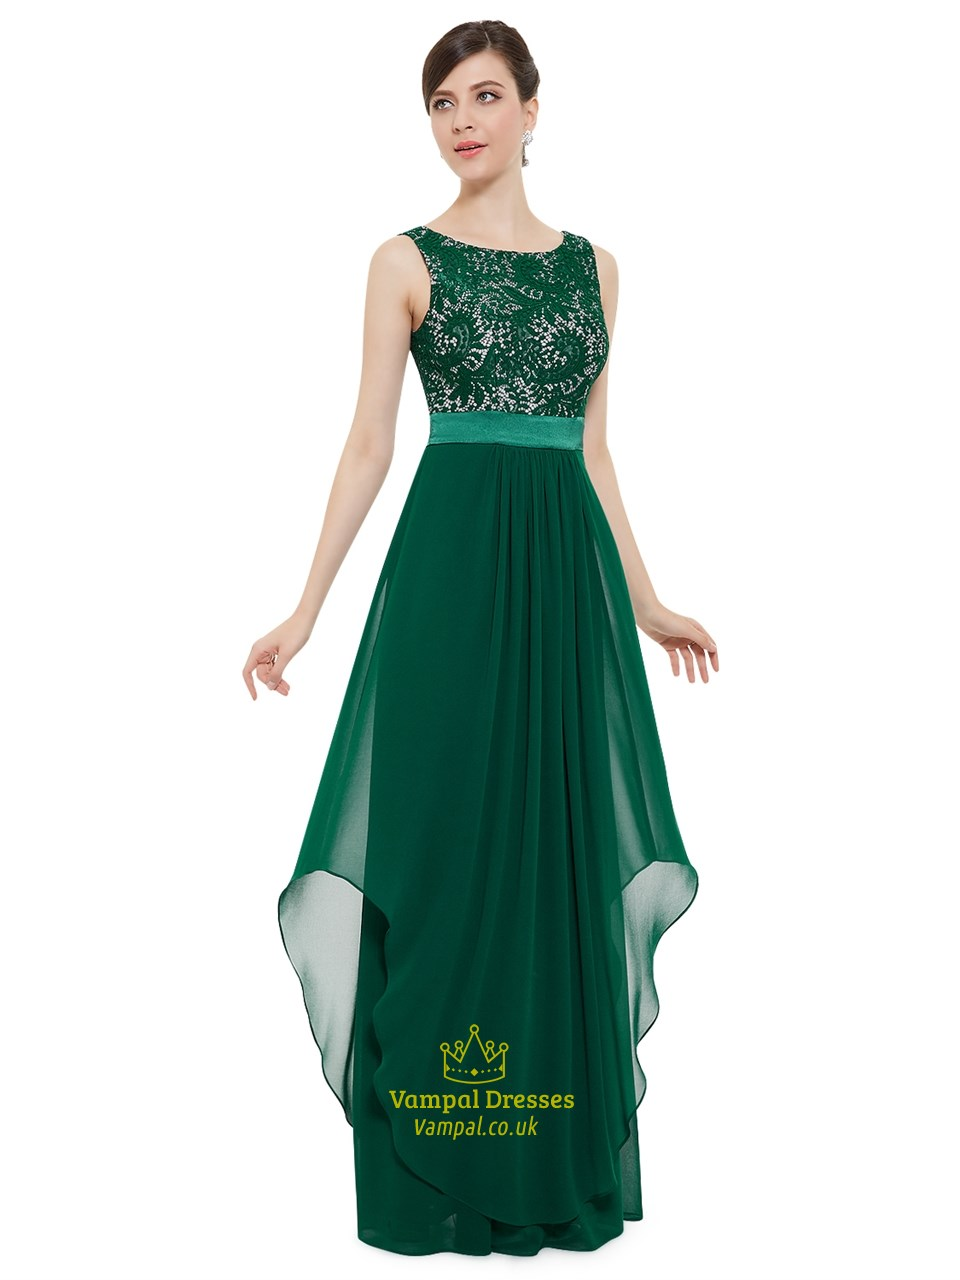 8202bf340f1 Elegant Emerald Green Chiffon Bridesmaid Dresses With Lace Bodice Sku Nw1470